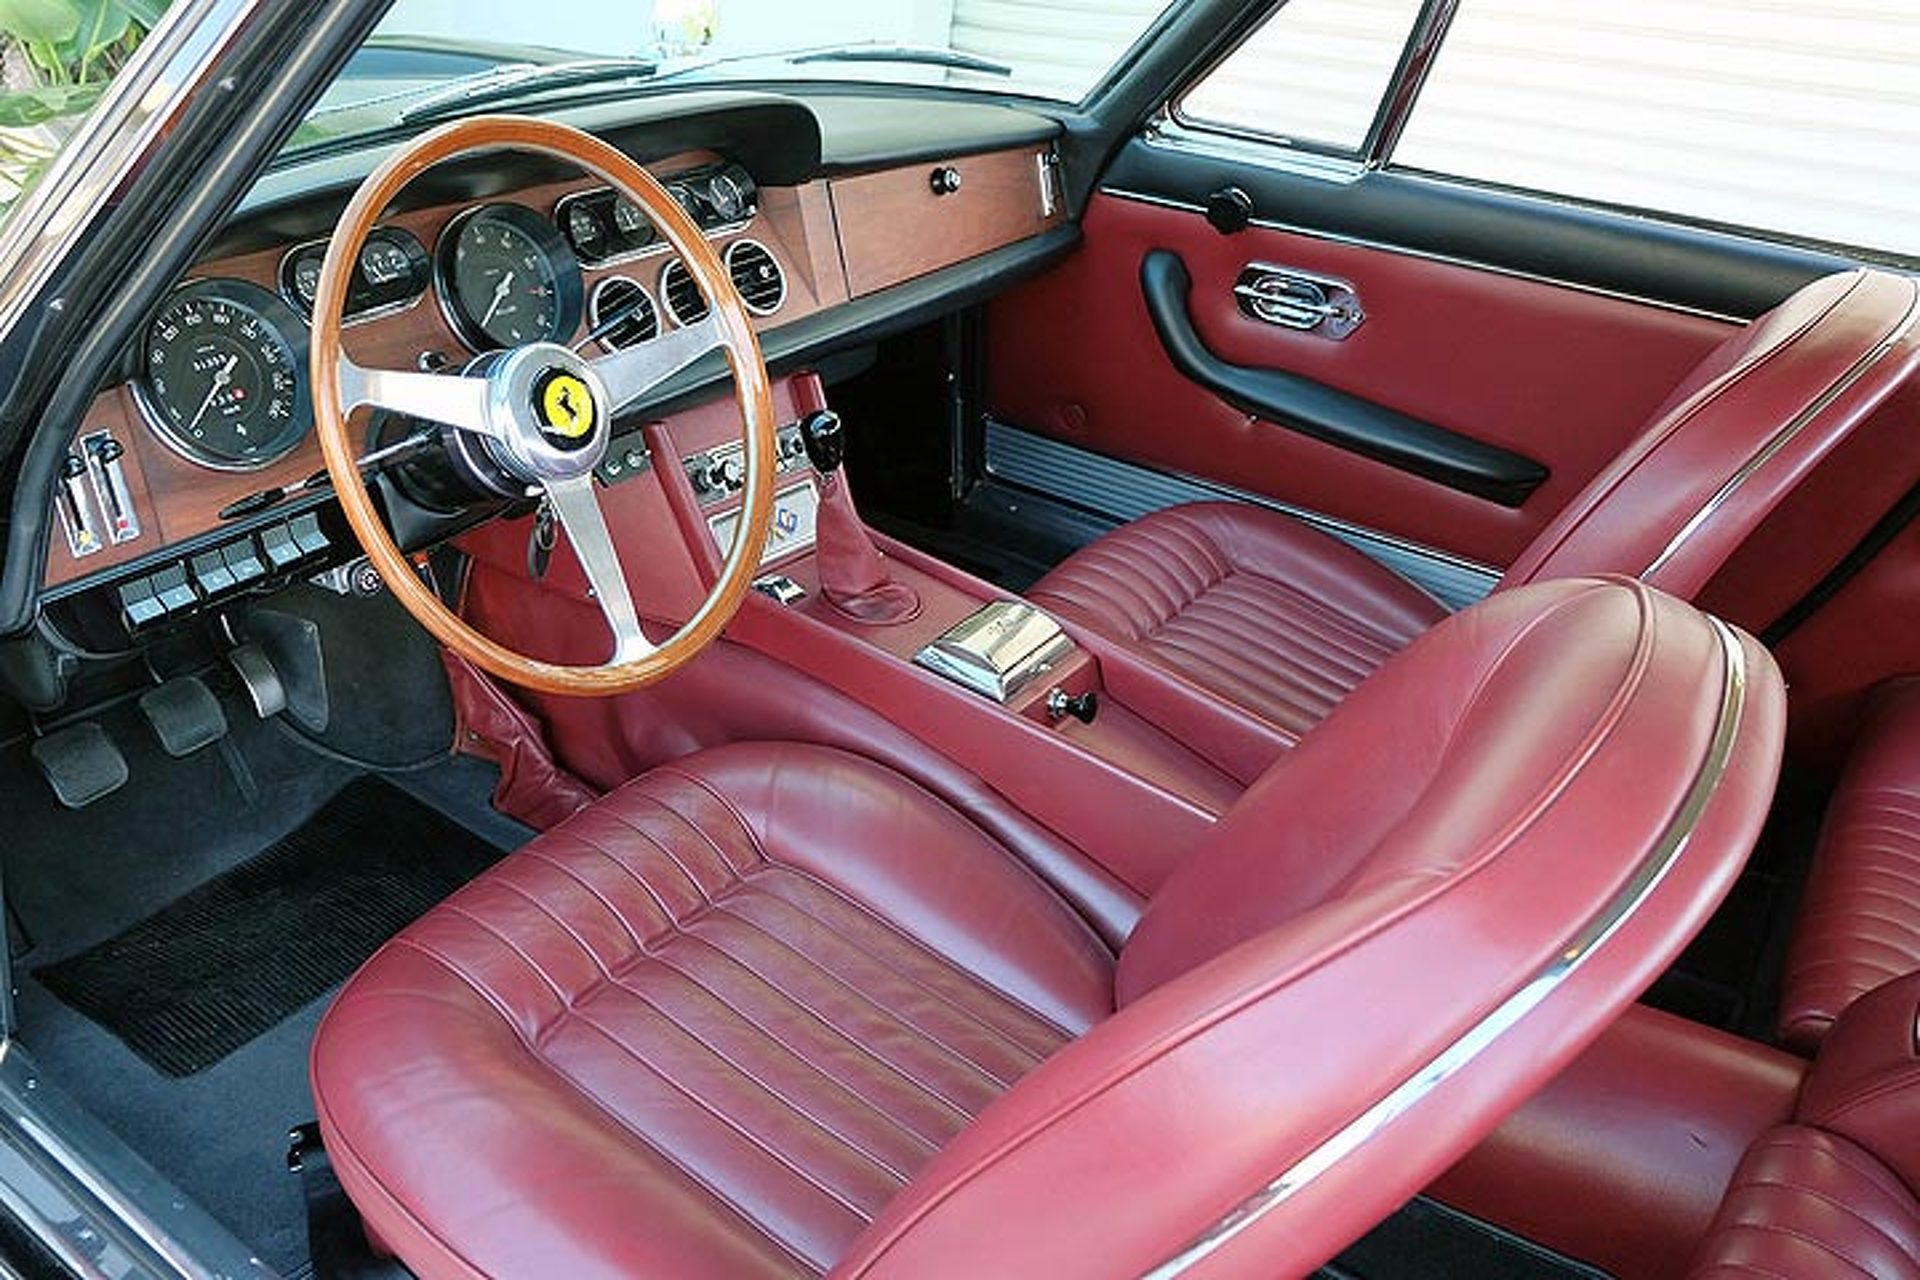 Adam Carolla's Beautiful 1966 Ferrari Heads to Auction